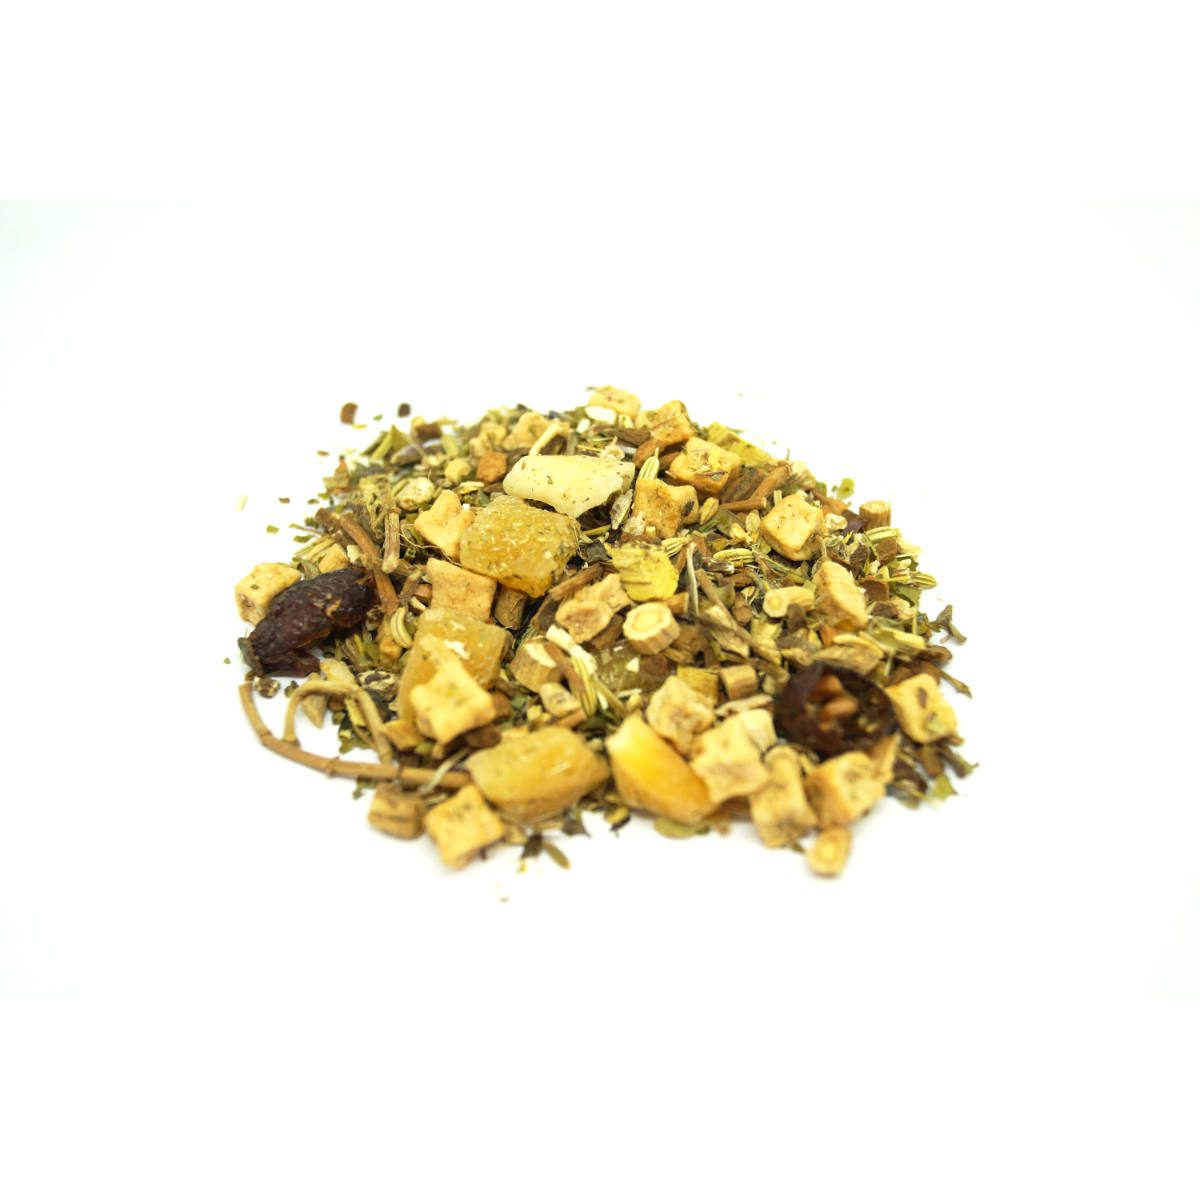 Wellness Self Help Tea is a complete package giving you many adaptogens herbs in a single blend to keep you well and healthy including a few detox herbs.